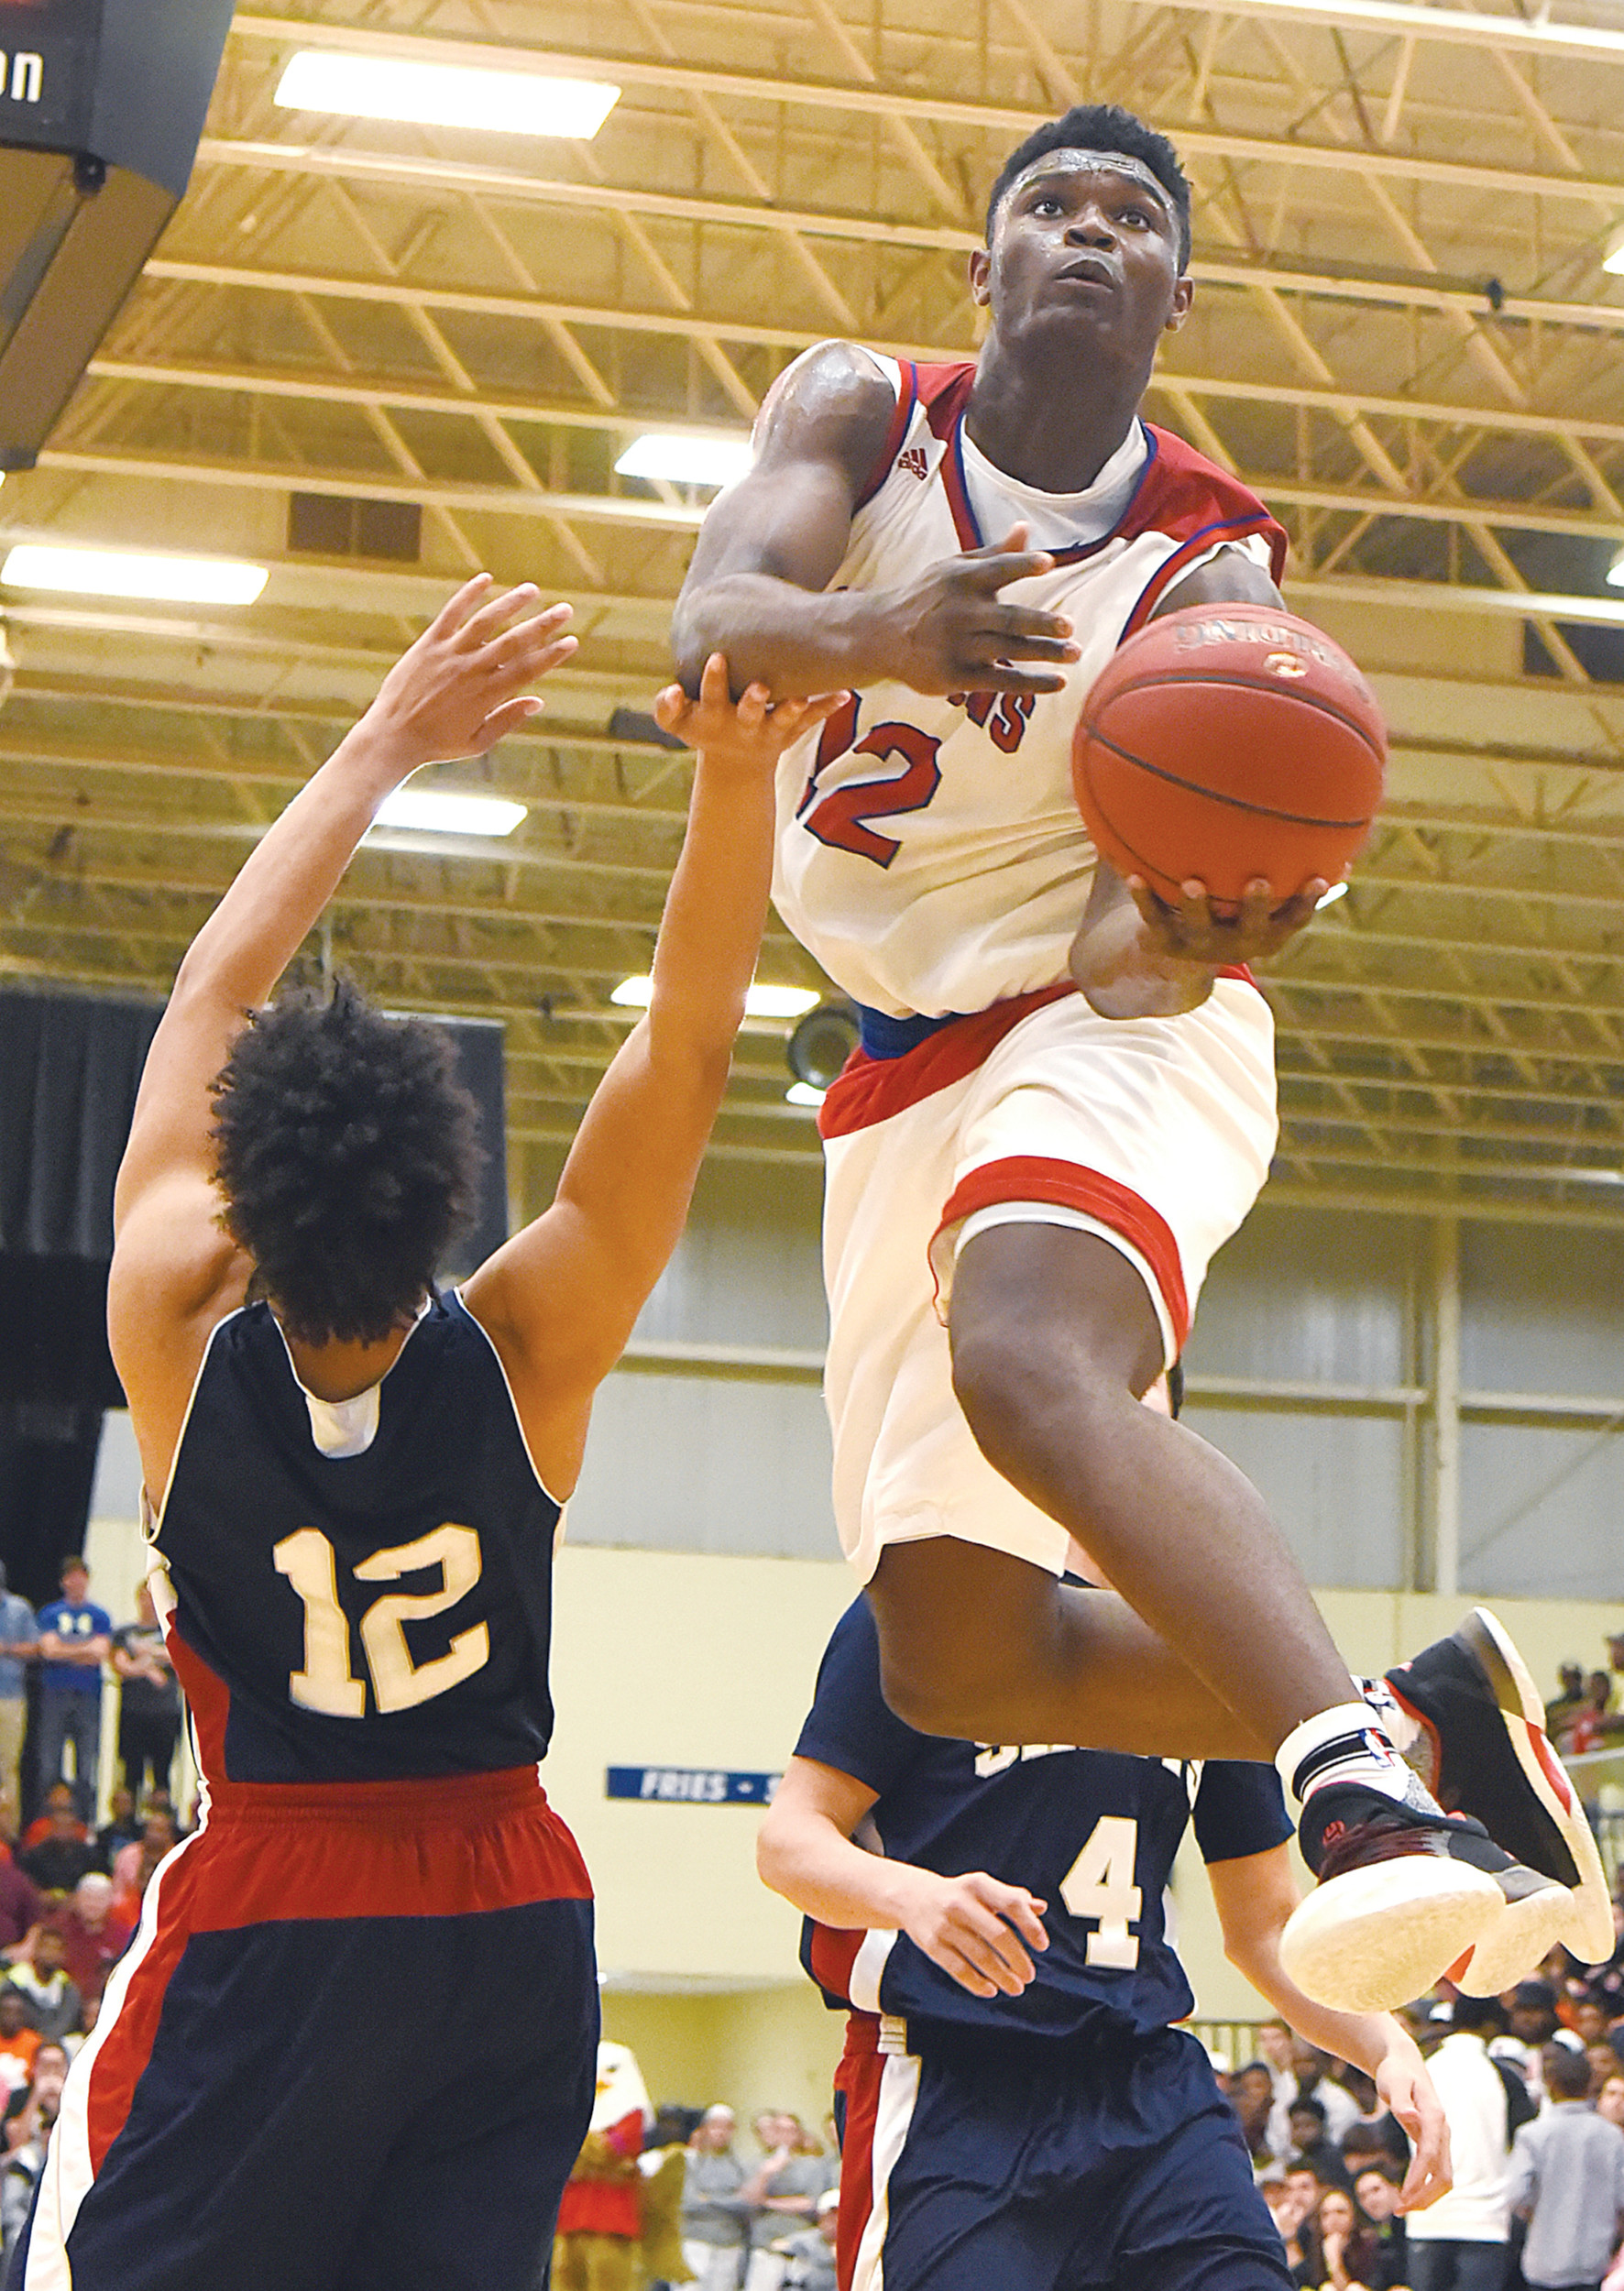 Spartanburg Day's Zion Williamson (12) flies in for a shot over Christian Academy's Jaylen Matthews (12) during last year's SCISA 2A state basketball tournament at the Sumter County Civic Center. Williamson and the Griffins won the title. RIGHT: Williamson winds up for a monster dunk, a scene sure to repeat itself at this year's tournament, which gets underway on Feb. 16.